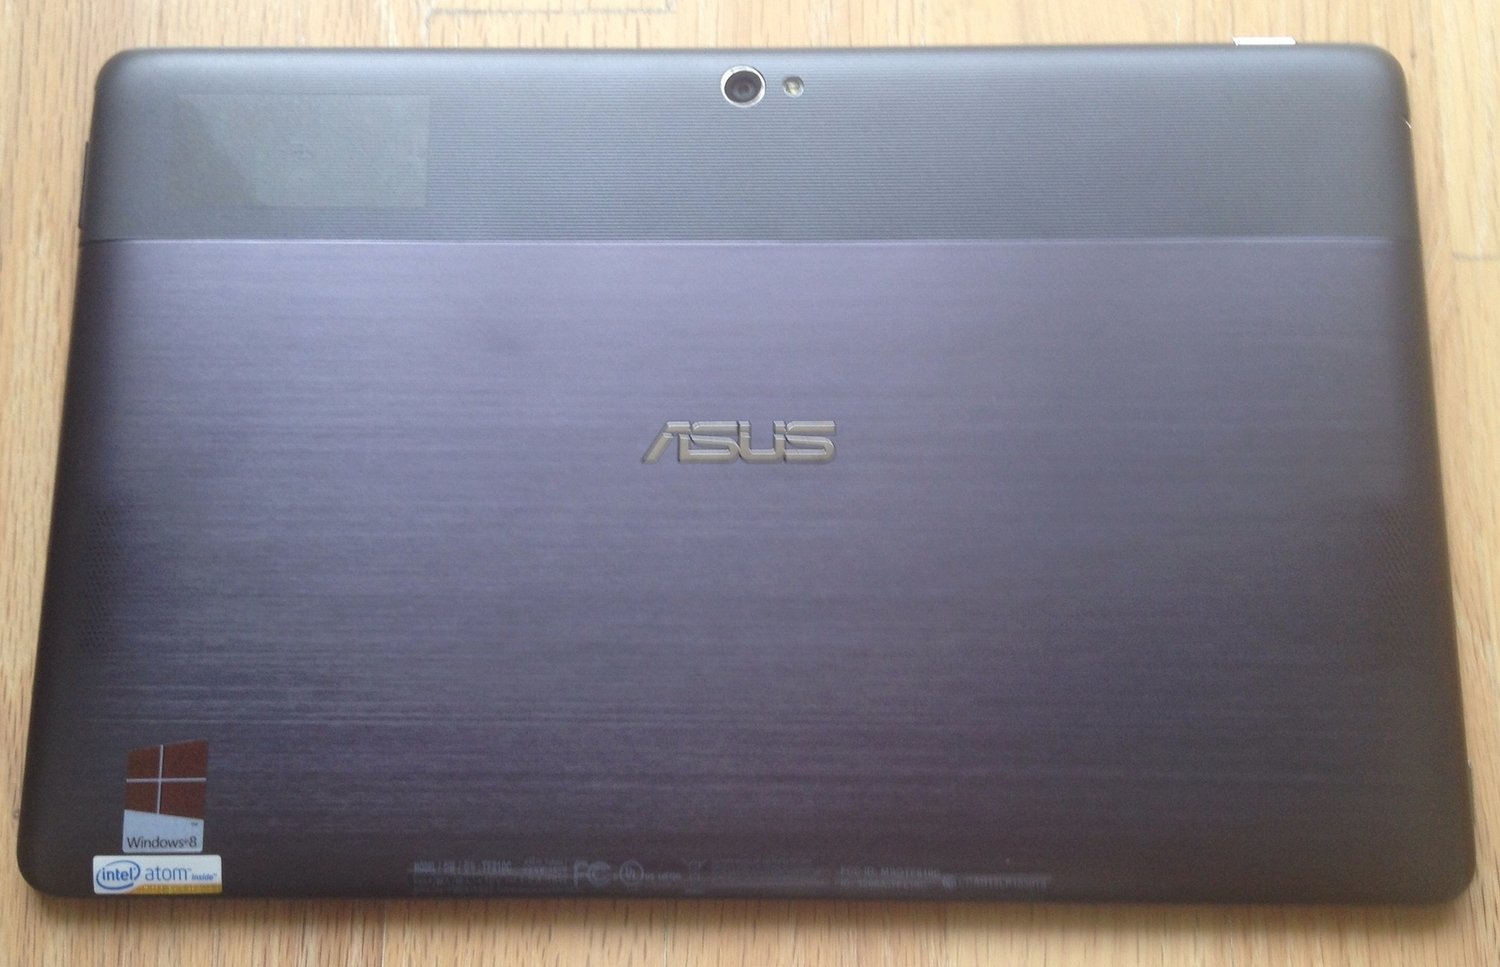 Asus Vivotab TF810C: a $299 bargain or money pit? — Surface